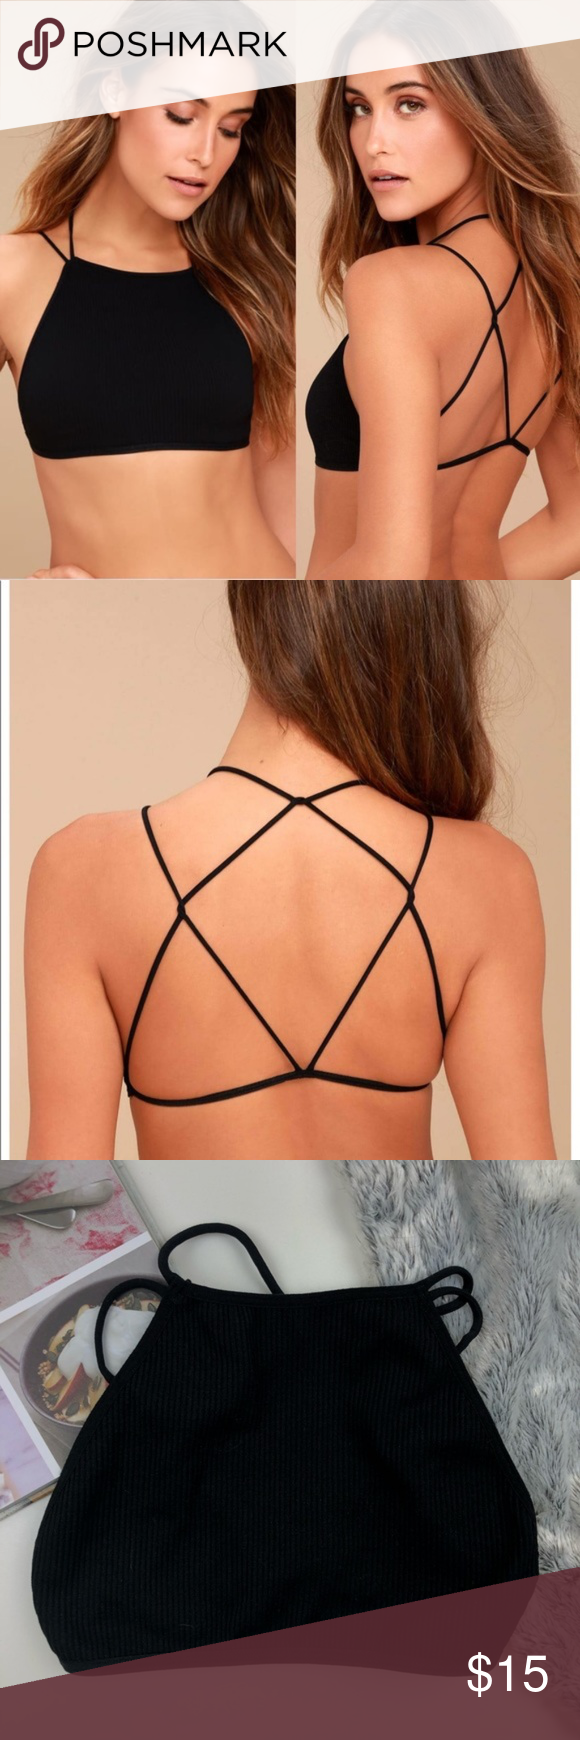 f37495b21405a NWT Free People High neck strappy bralette NWT Free People High neck  strappy bralette -size